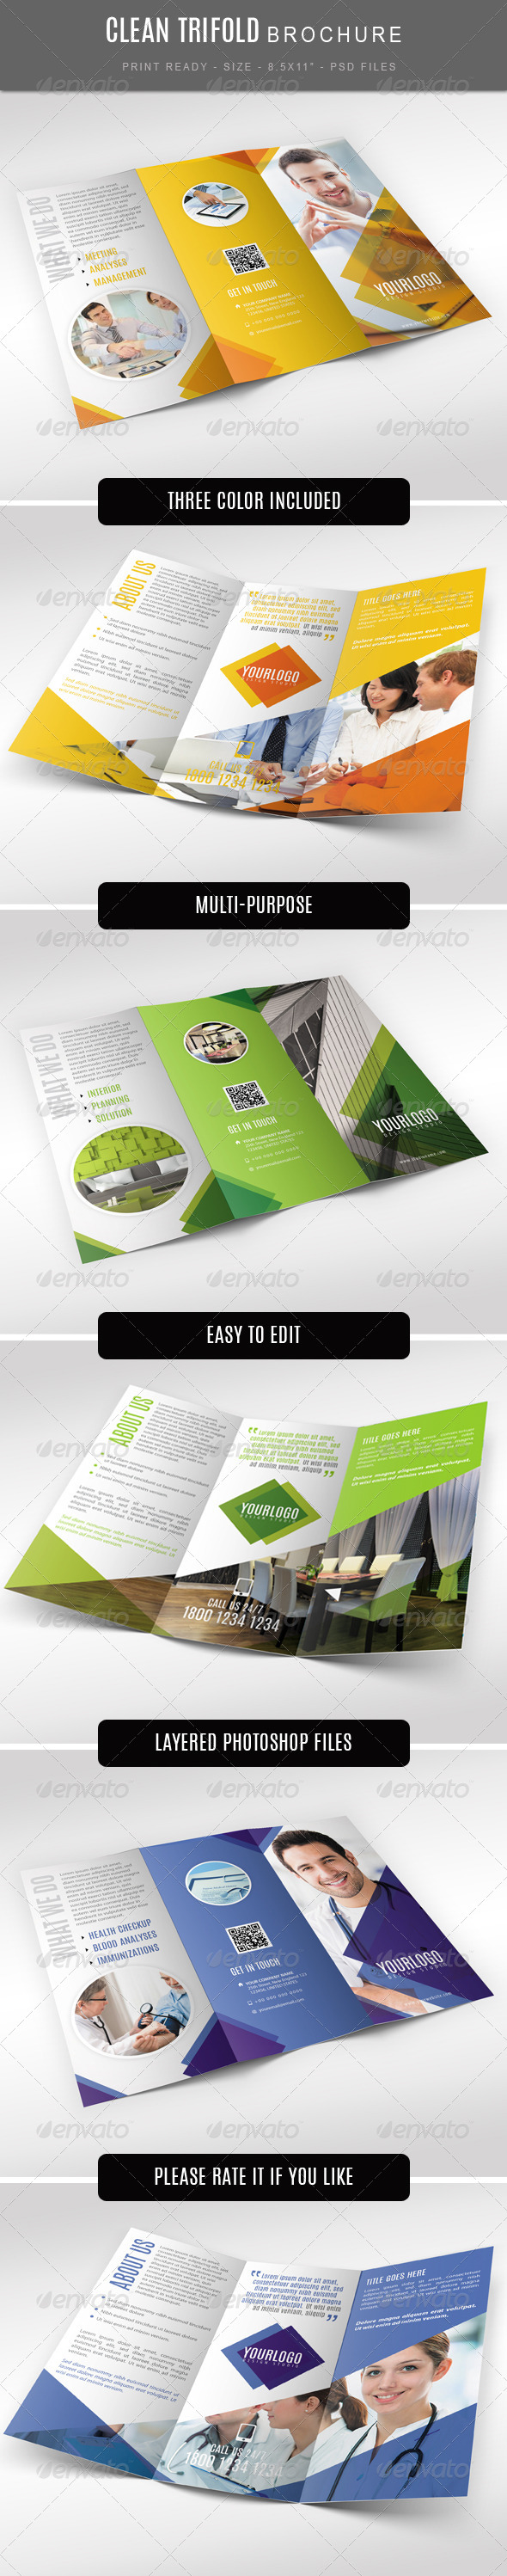 GraphicRiver Multi Purpose Tri Fold Brochure 7533313